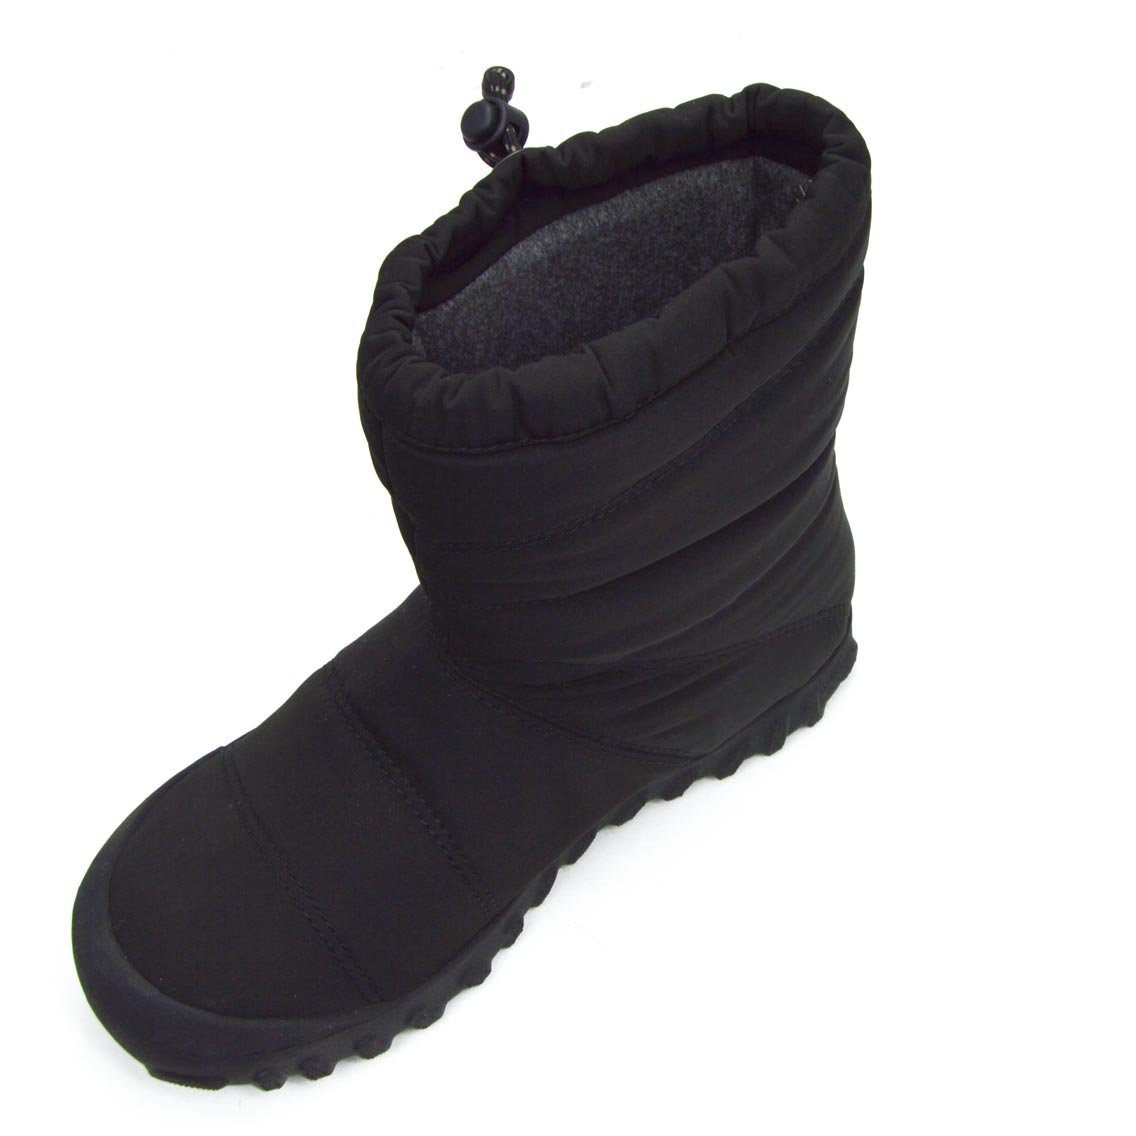 Puffy Mid Black Insulated Boots